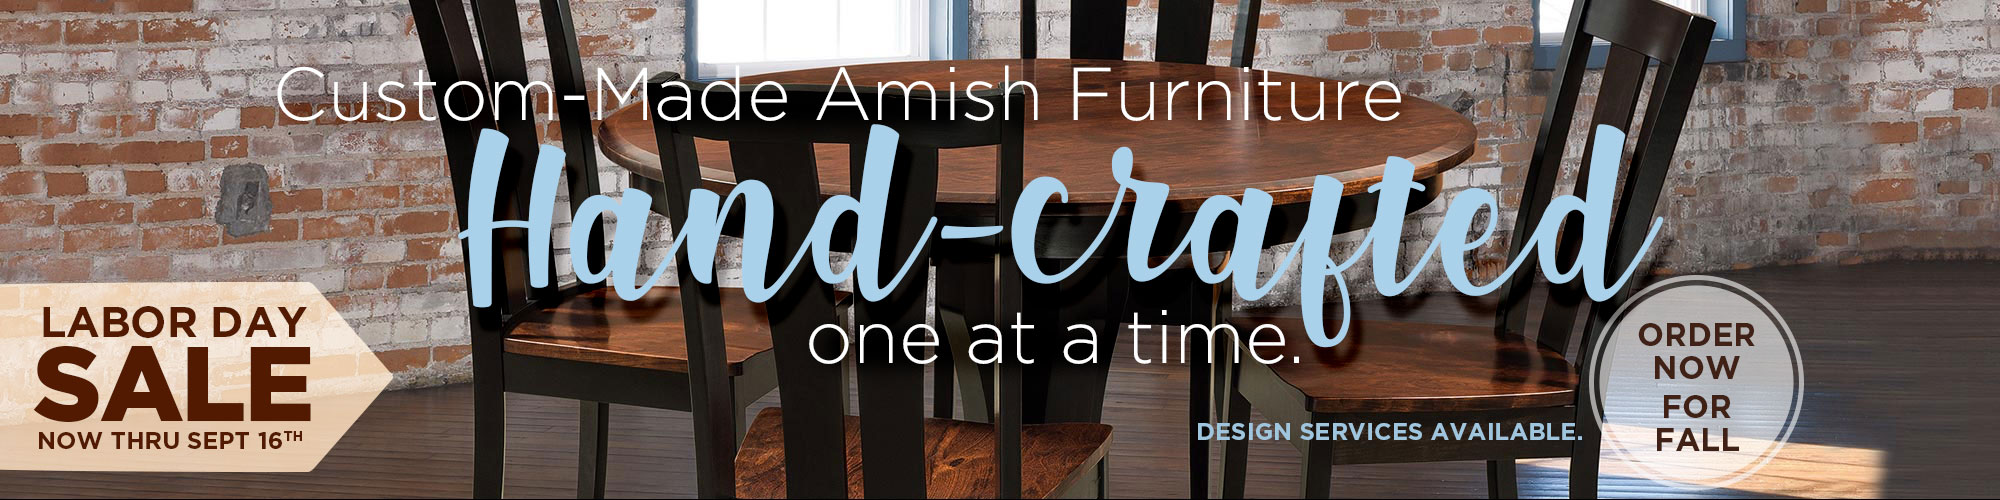 Superb Amish Furniture Handcrafted Wood Furniture Toledo Oh Interior Design Ideas Philsoteloinfo